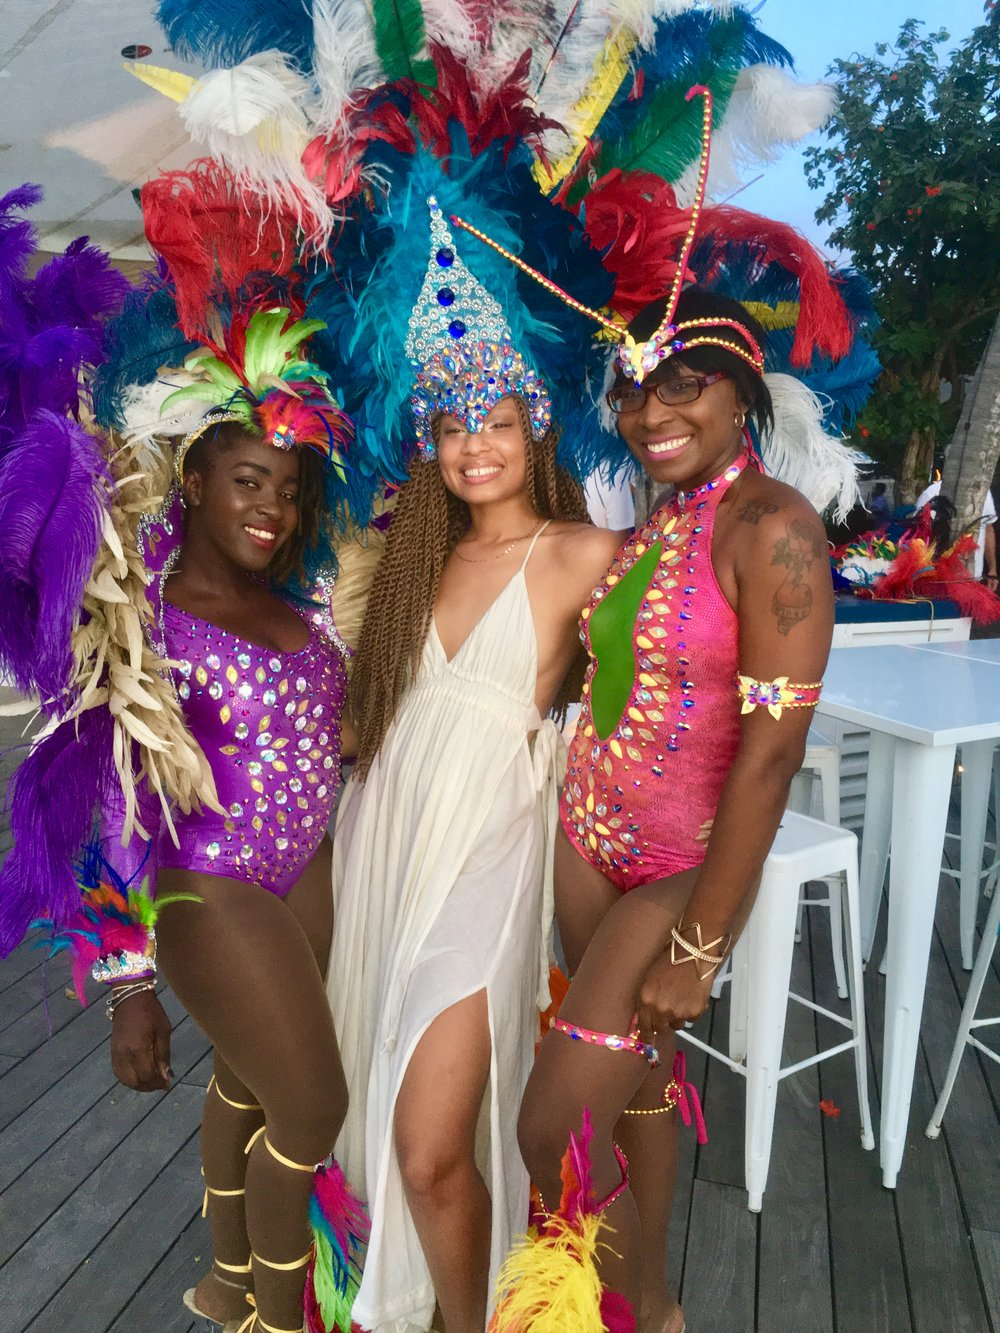 *adds Carnivale to bucket list* - I met some beautiful women on this trip. Sheesh.